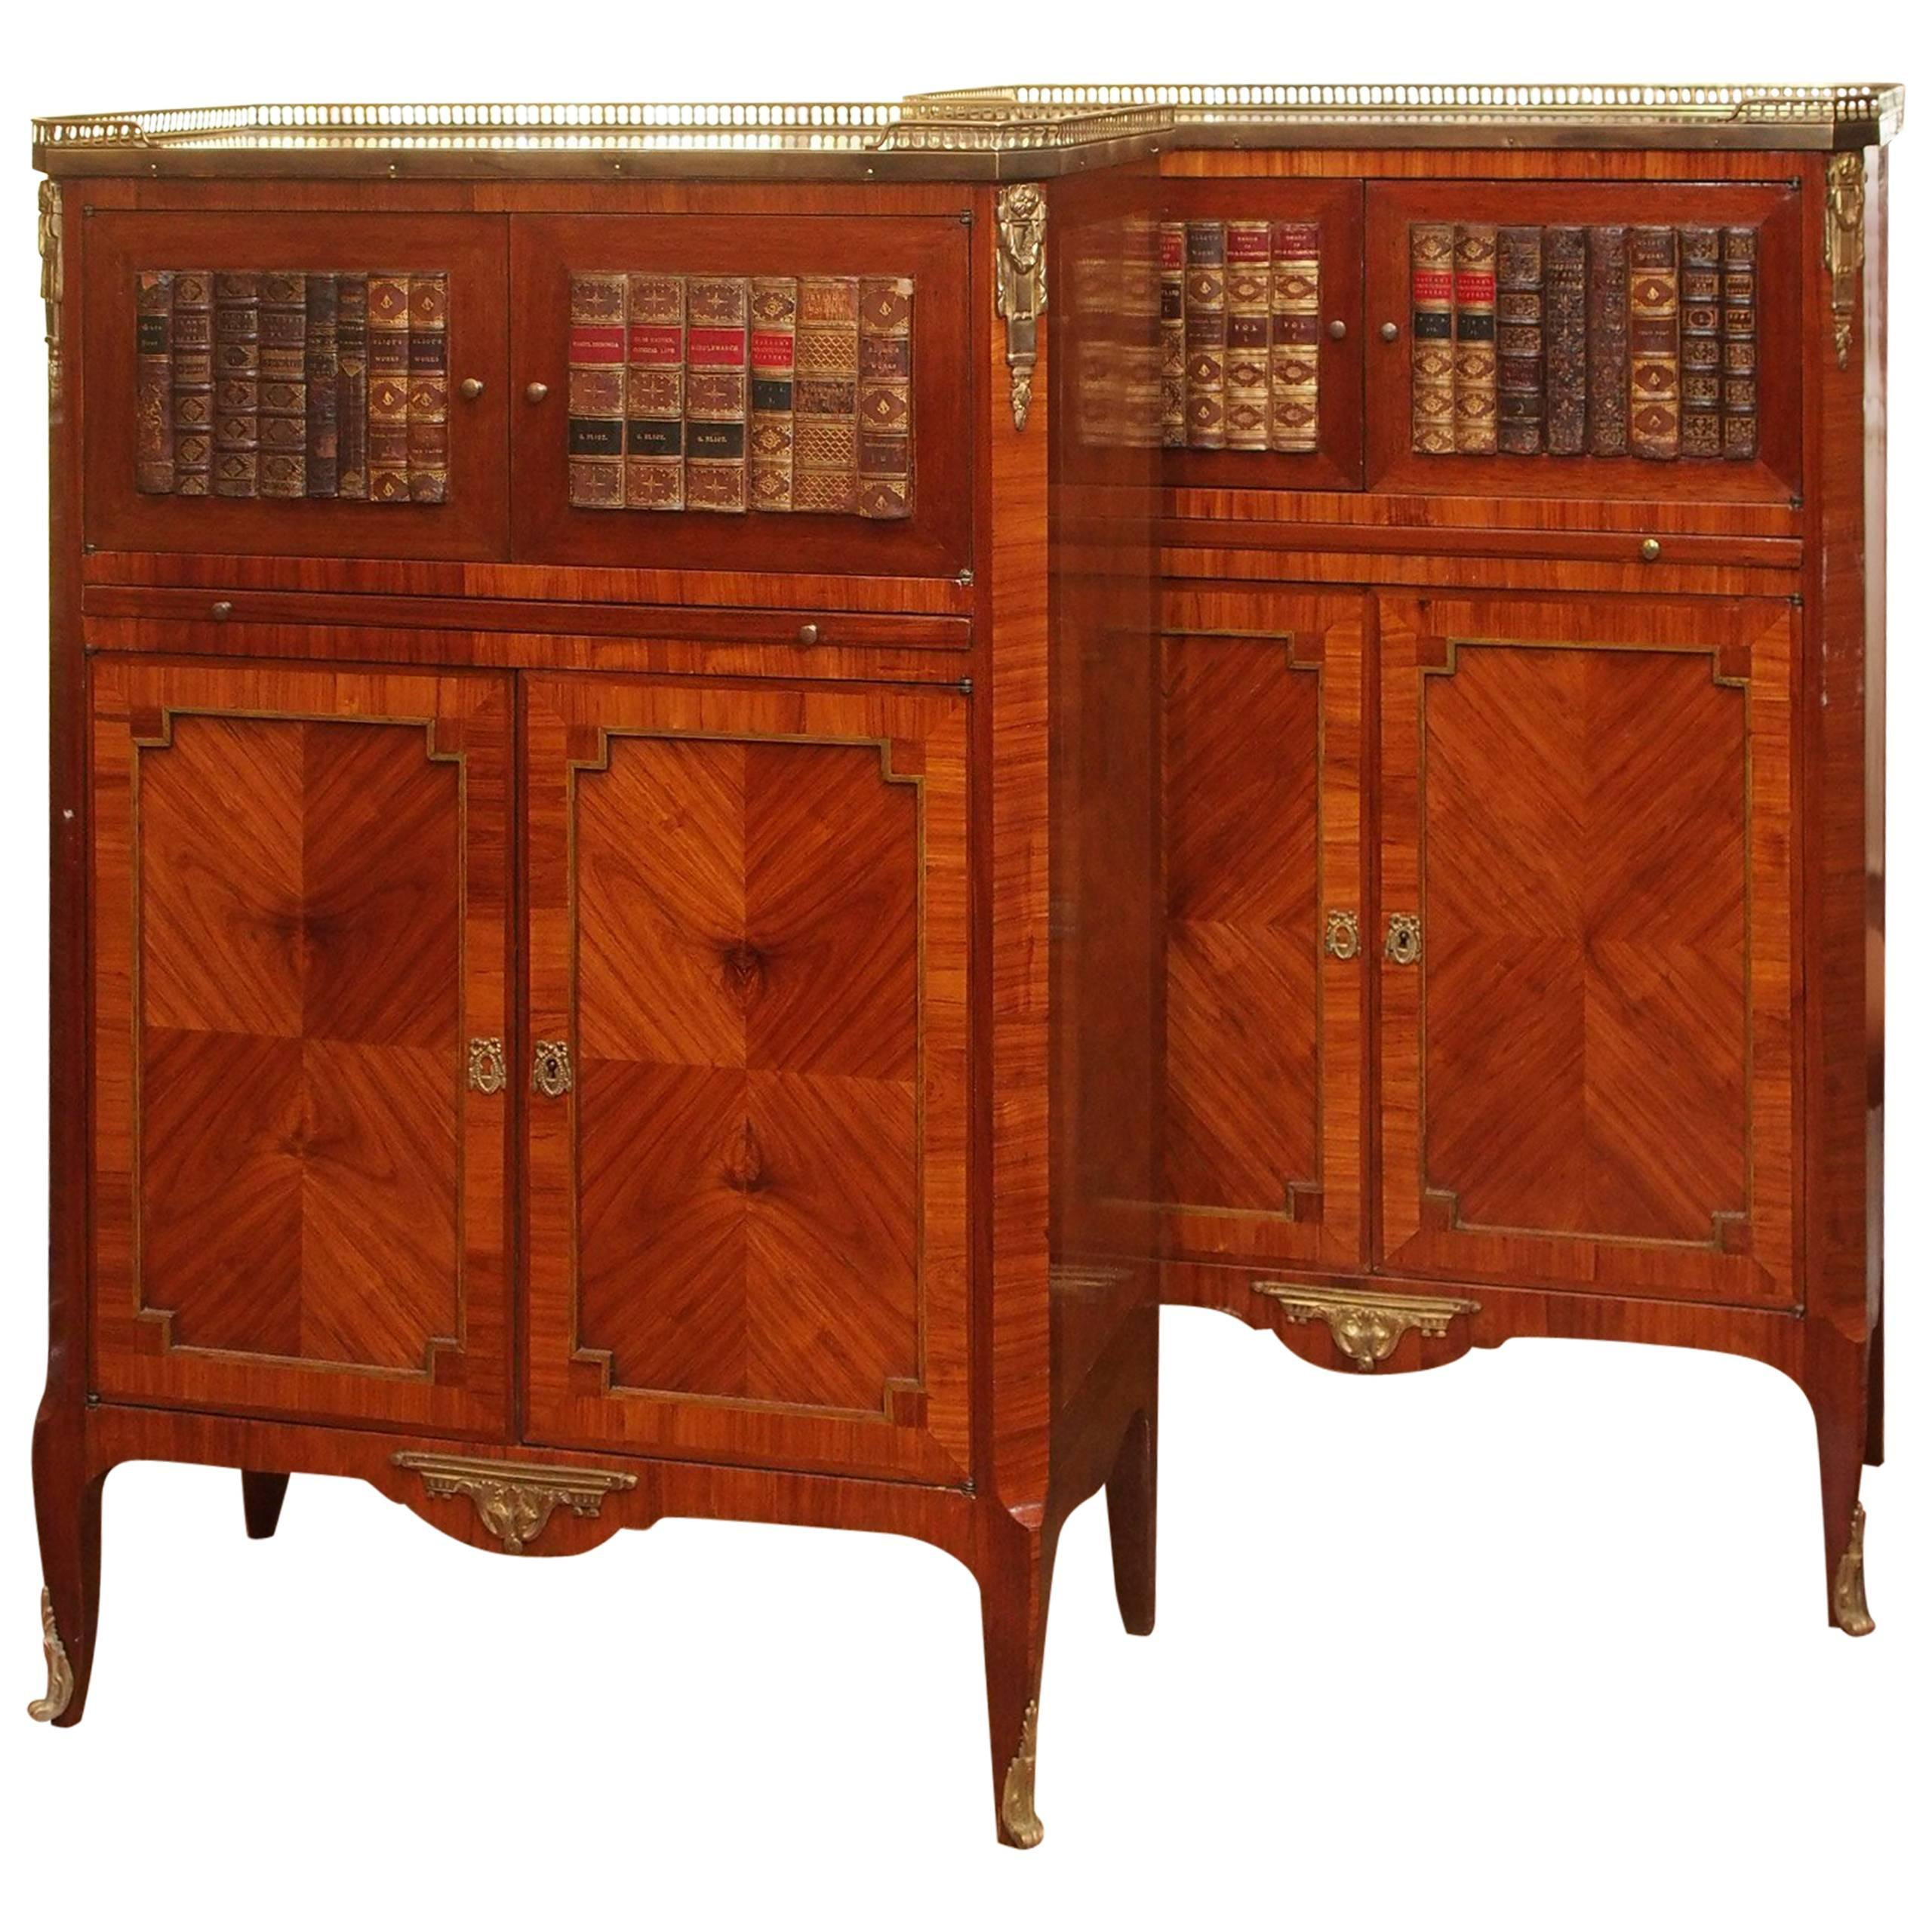 Antique library bookcases 19th Century Pair Of Antique Mahogany Library Bookcases For Sale 1stdibs Pair Of Antique Mahogany Library Bookcases For Sale At 1stdibs